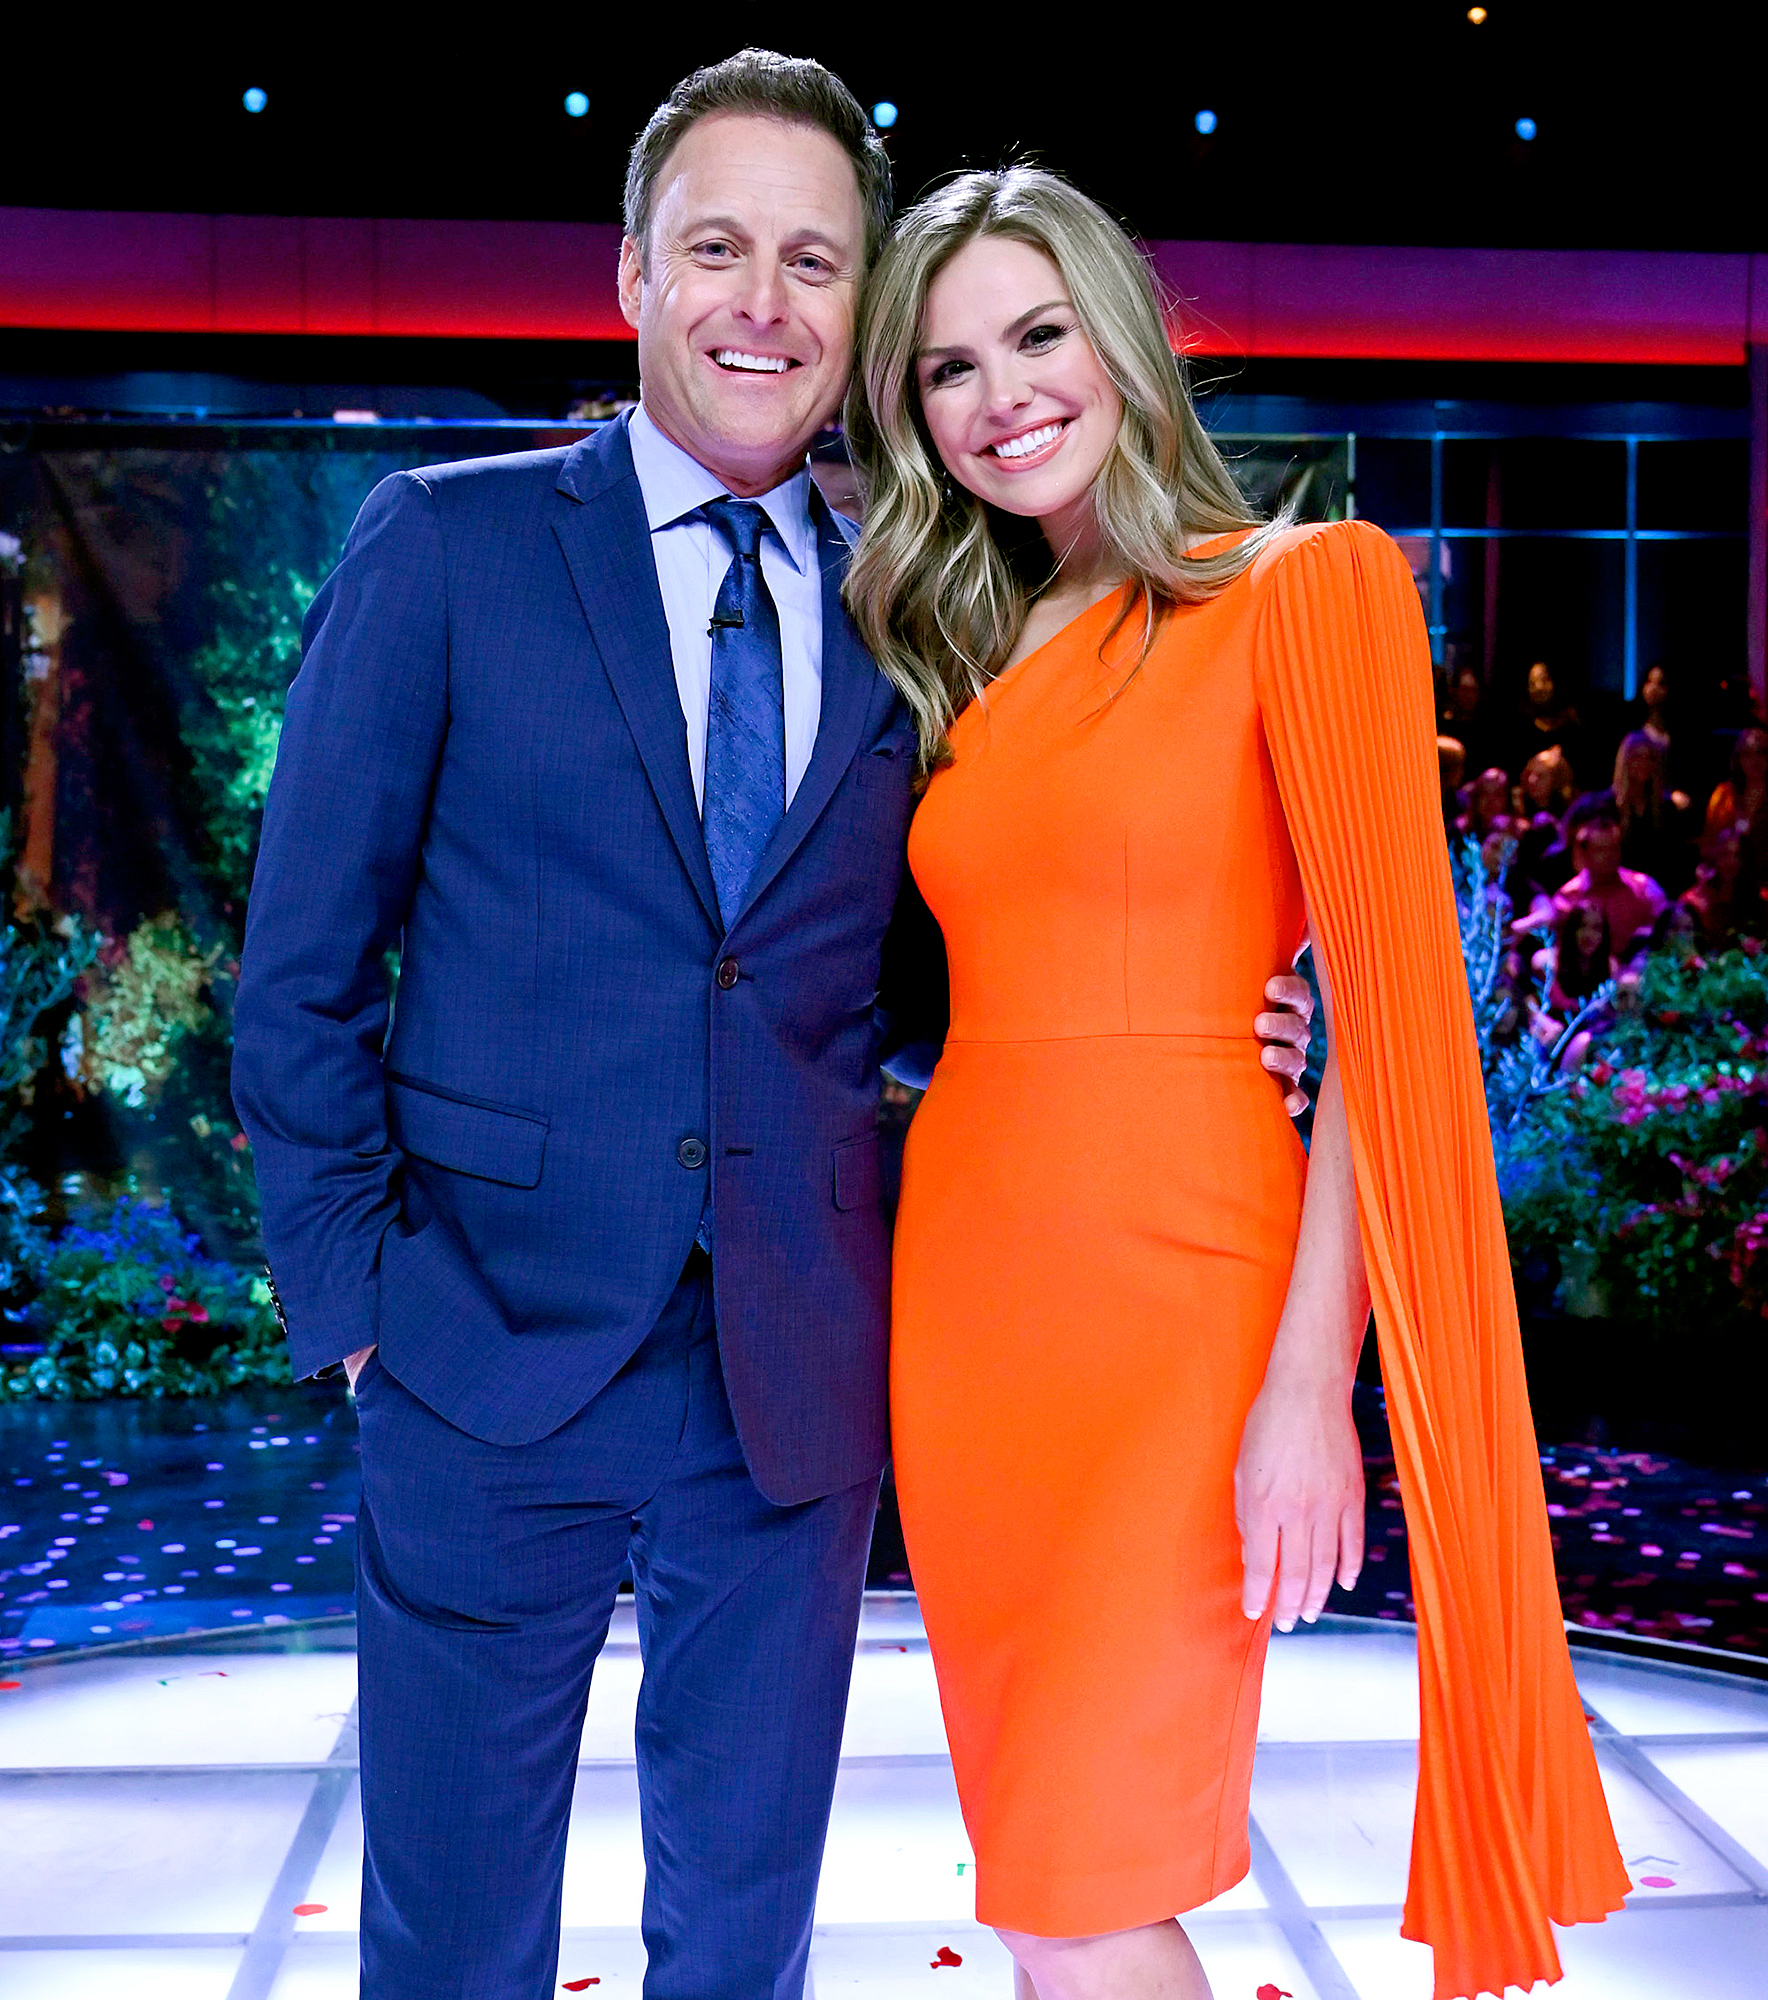 Chris Harrison and Hannah Brown